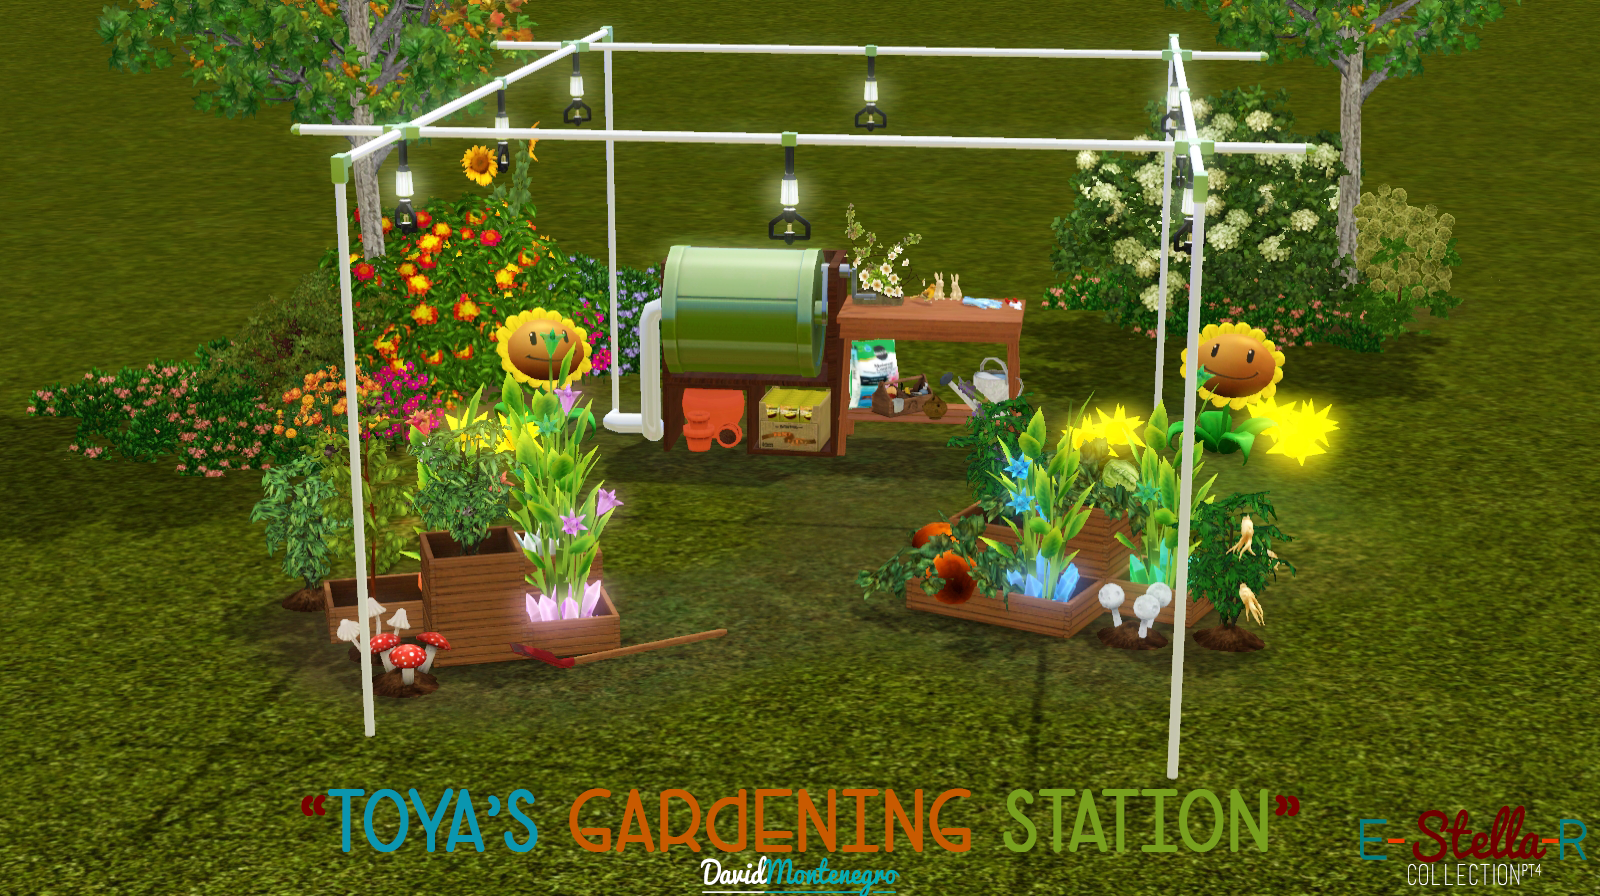 My sims 3 blog toya 39 s gardening station by david montenegro for Sims 3 garden design ideas